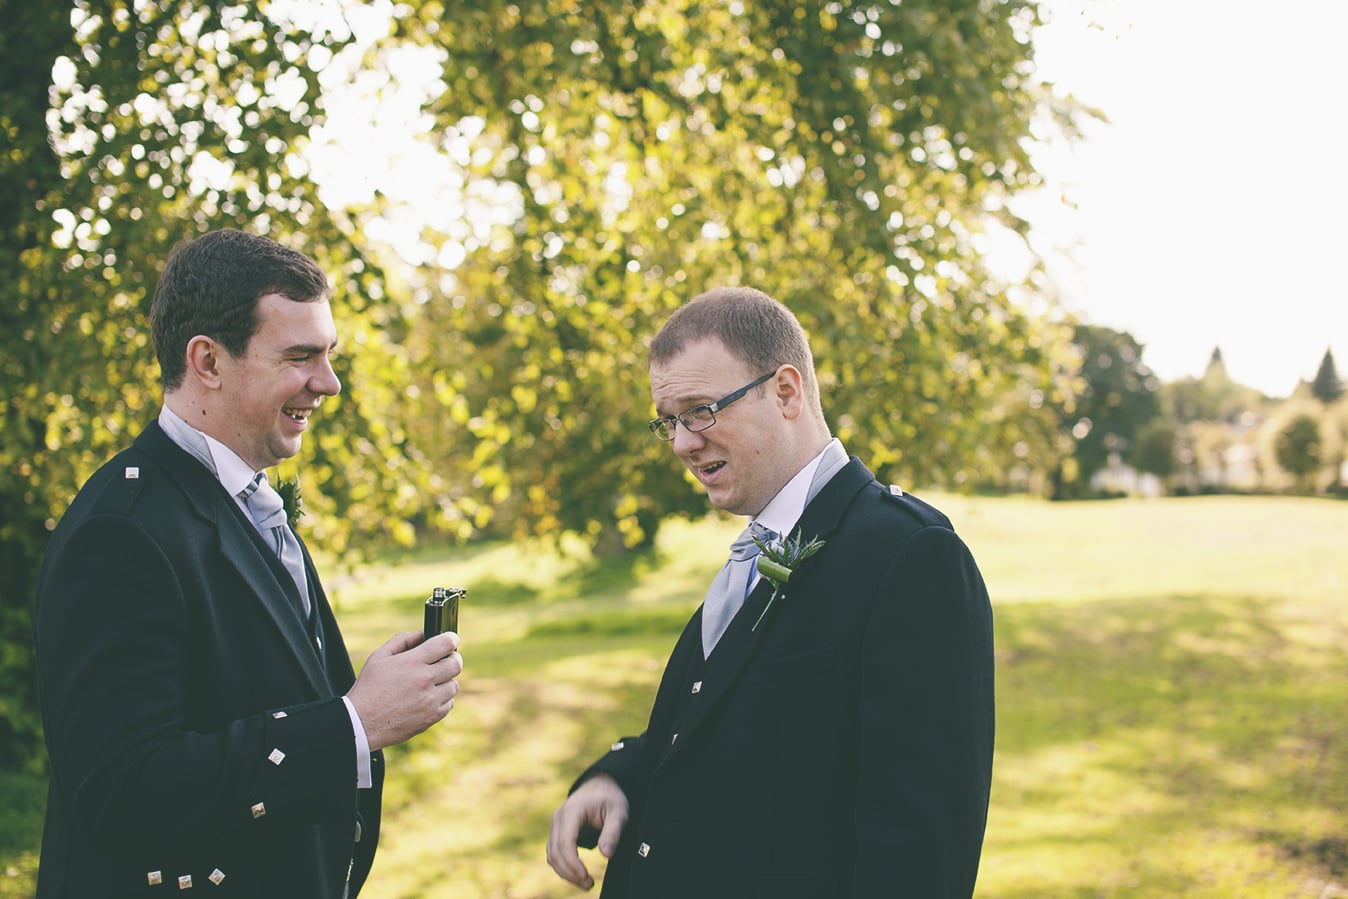 relaxed_wedding_photography_scotland (57).jpg